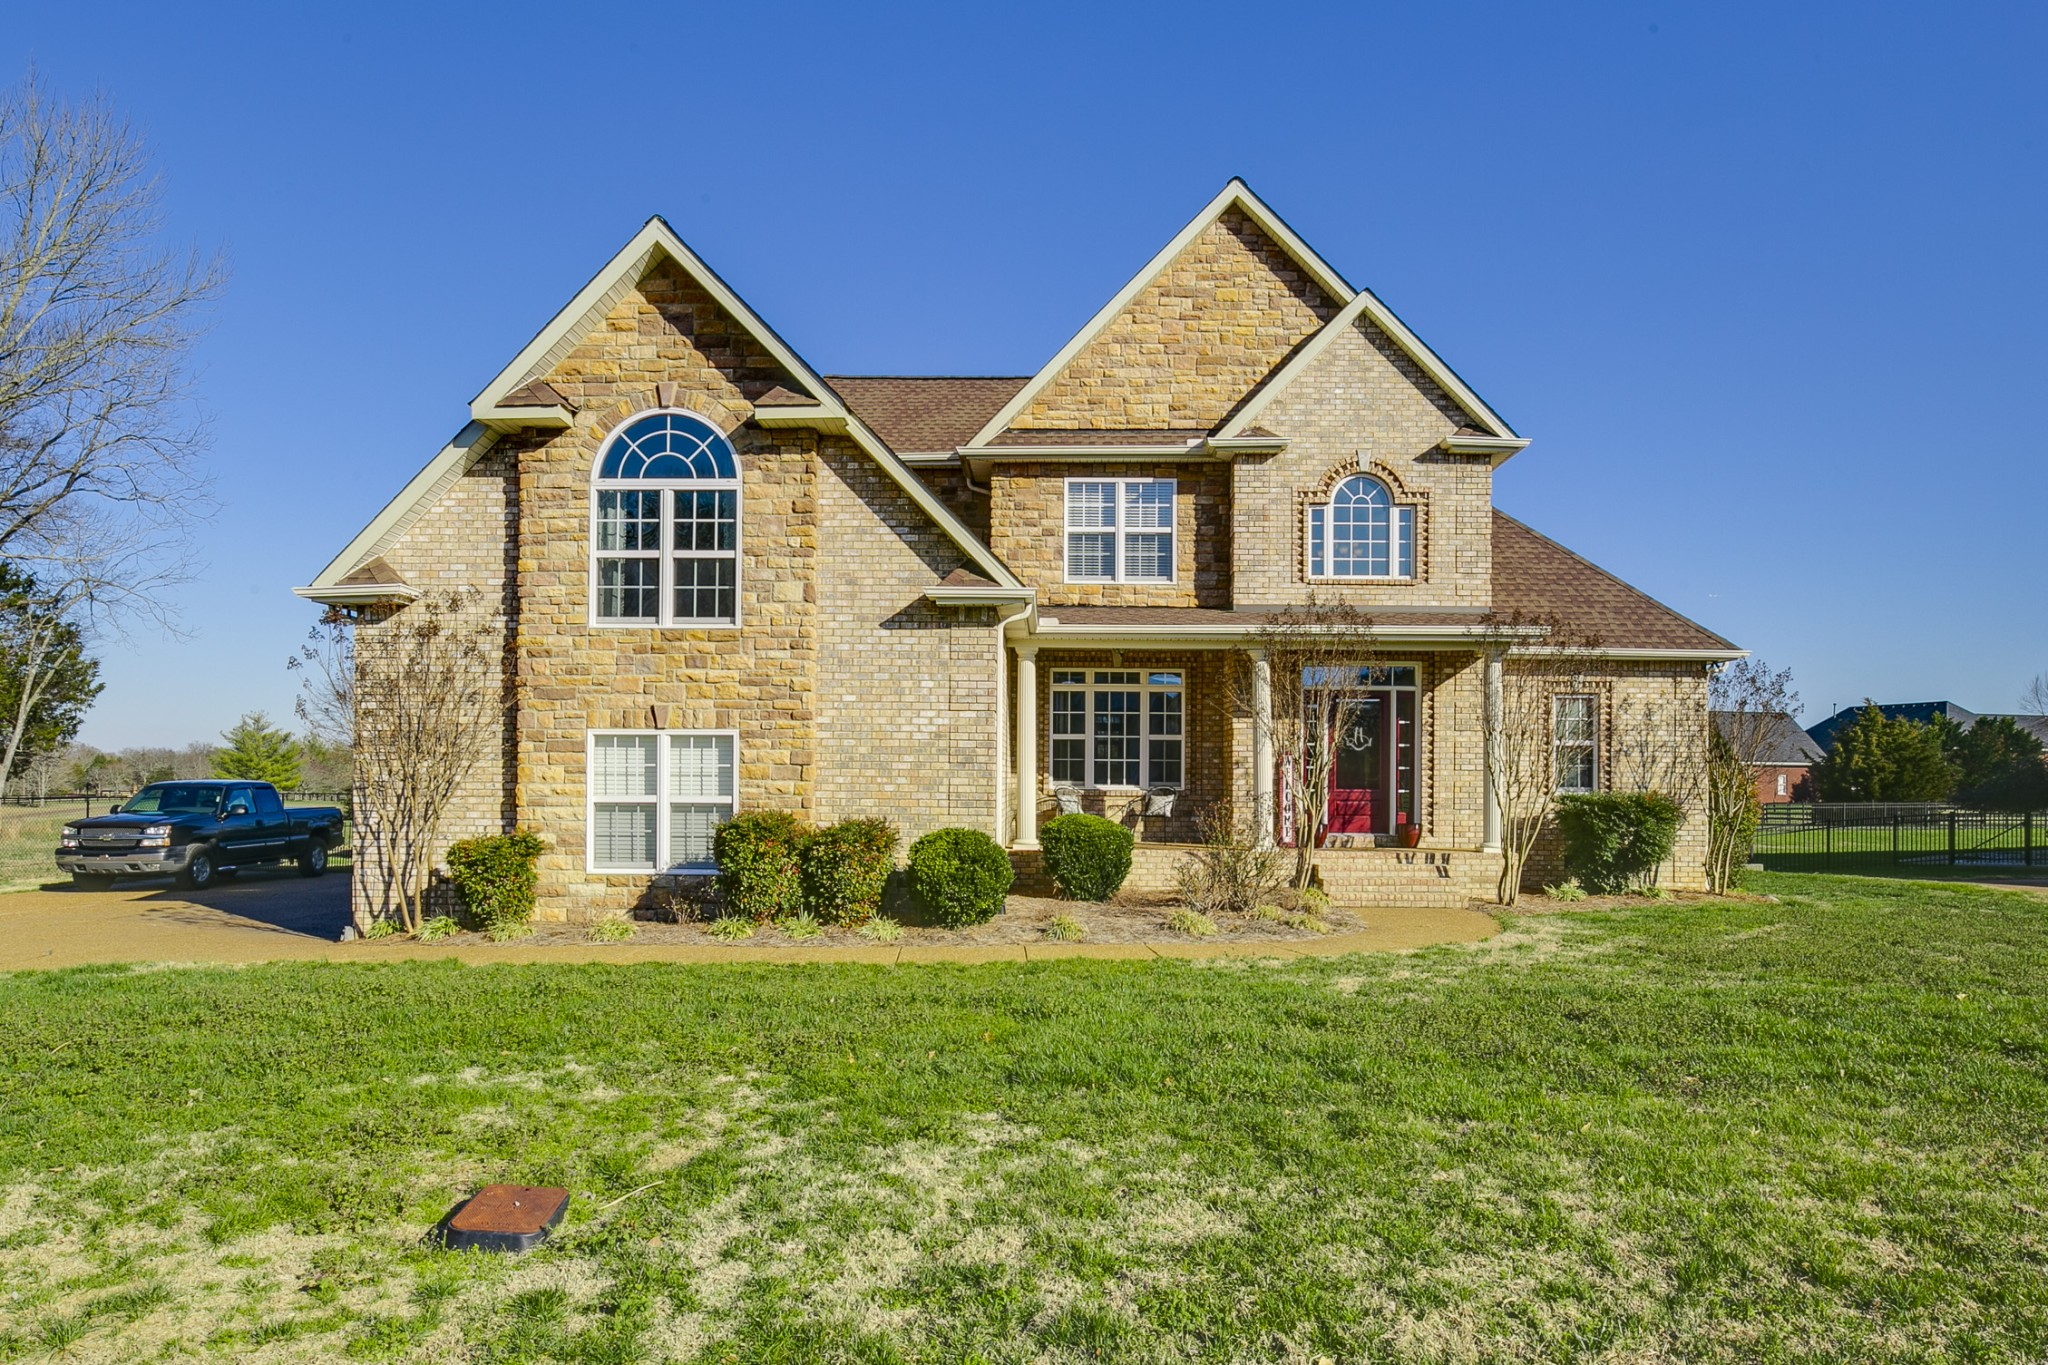 91 Thomas Vance Ct, Lebanon, TN 37087 - Lebanon, TN real estate listing